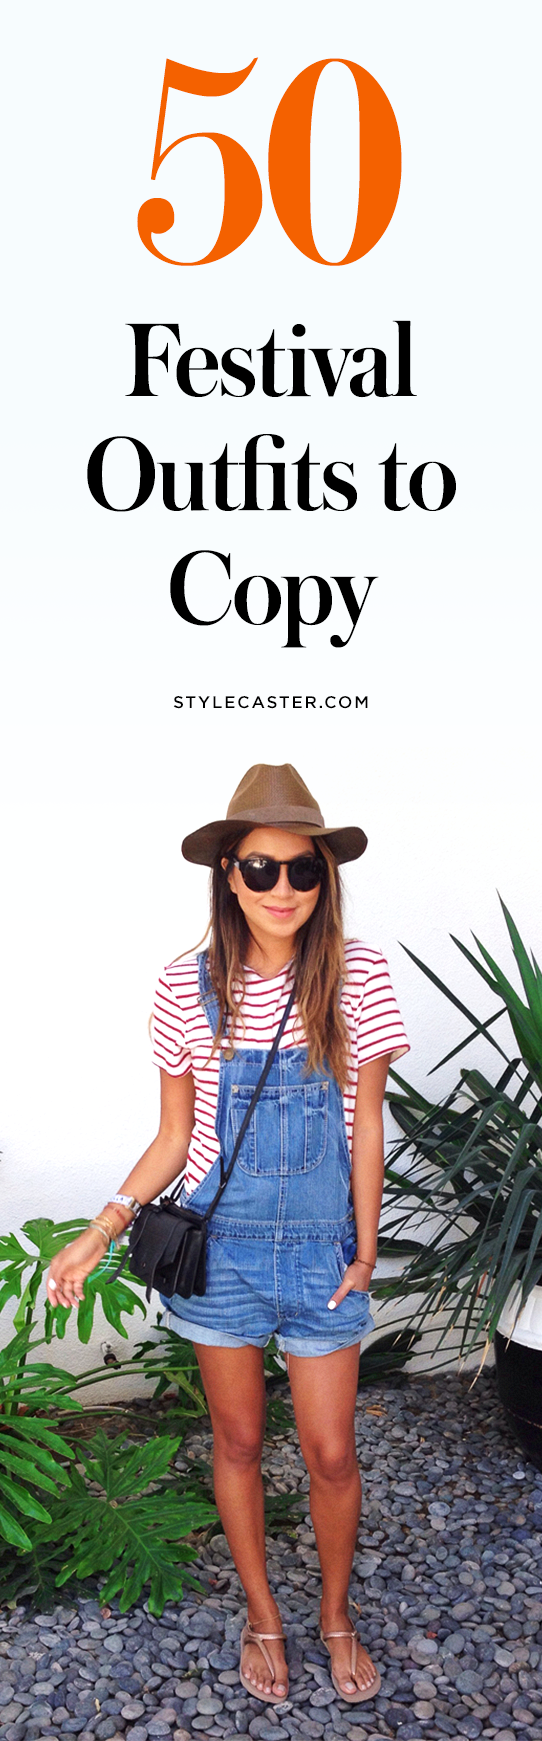 50 Festival Outfit Ideas to Copy All Summer Long   Coachella & Lollapalooza fashion inspiration   @stylecaster